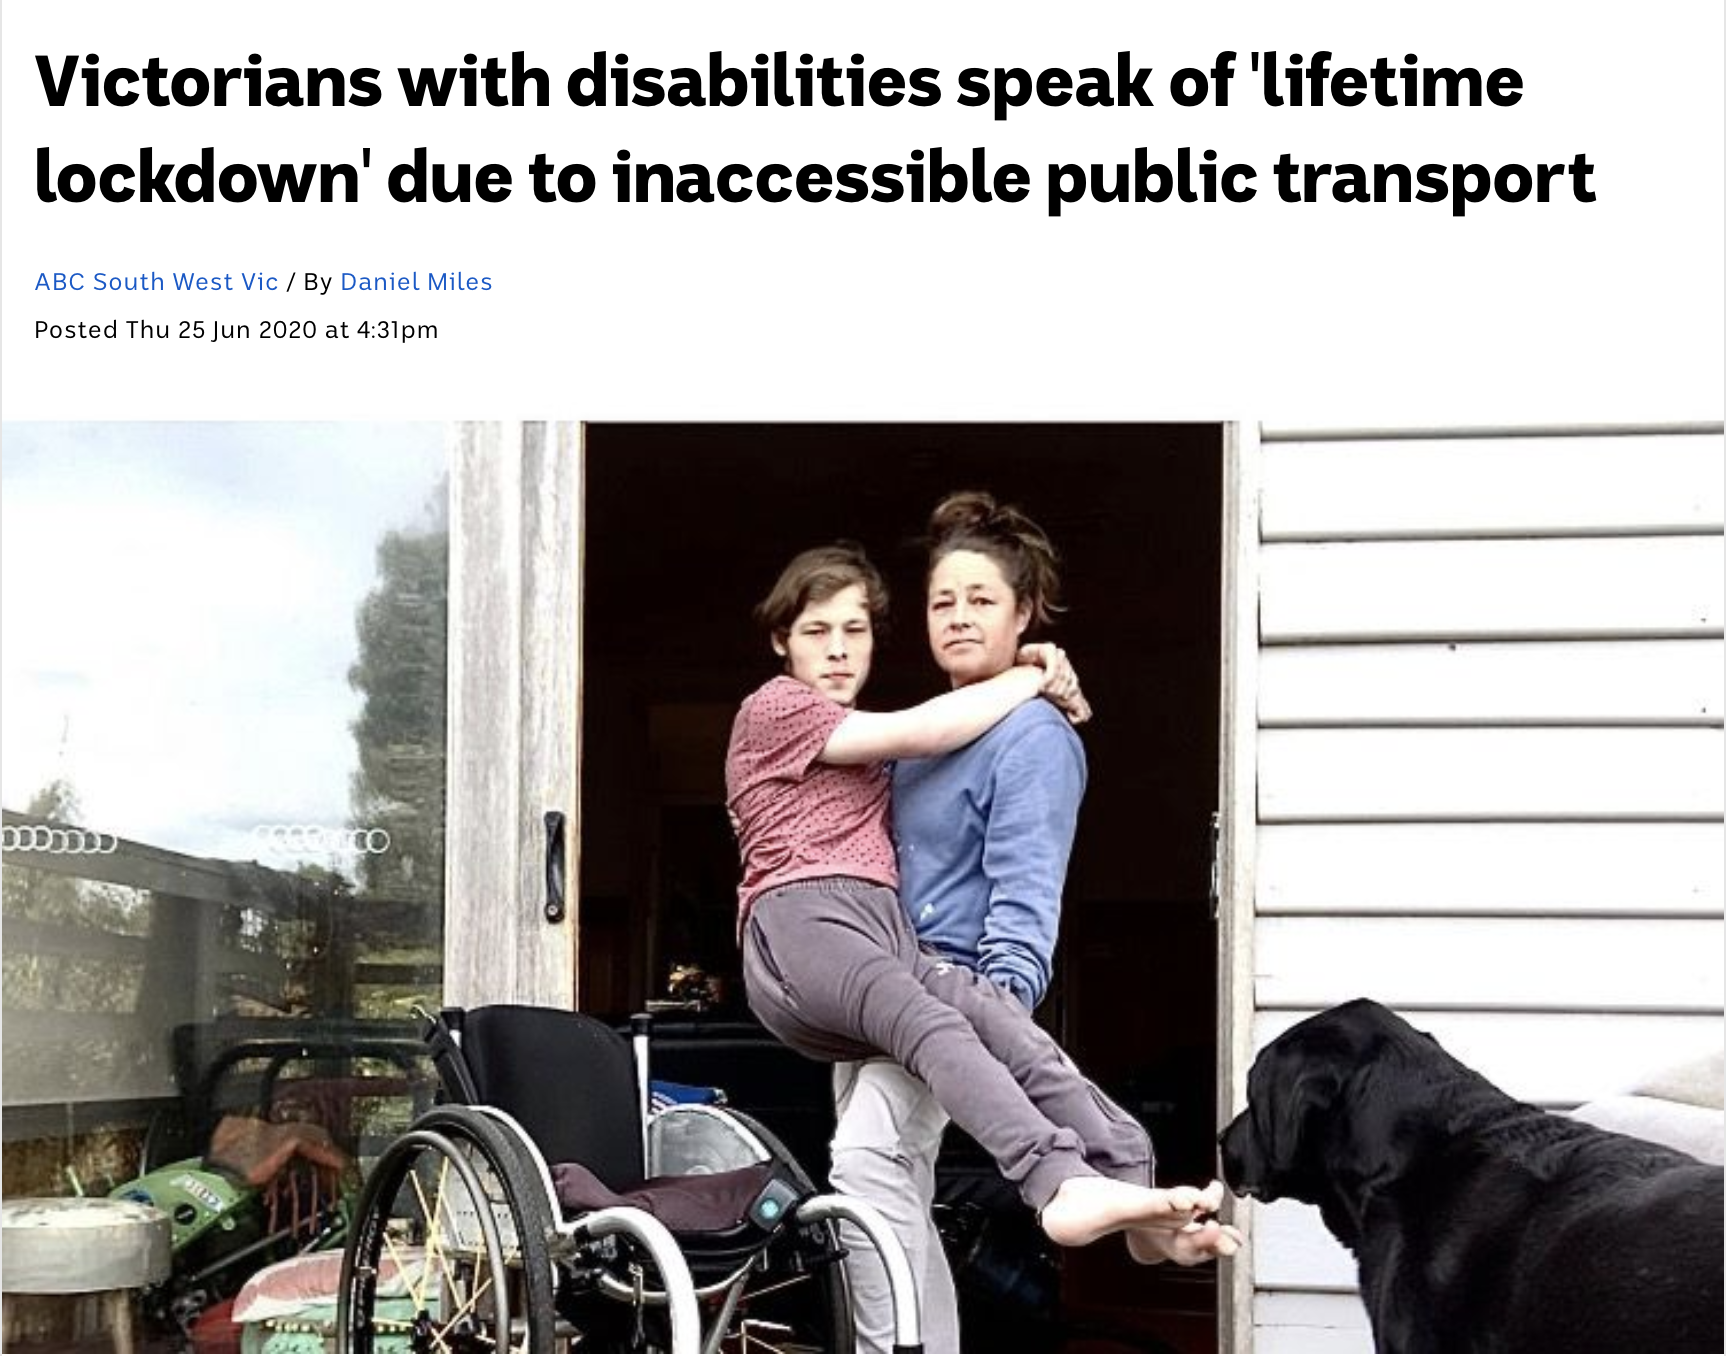 A screenshot of an ABC news online article of a mother holdingher teenage son in her arms as she lifts him into him wheelchair.